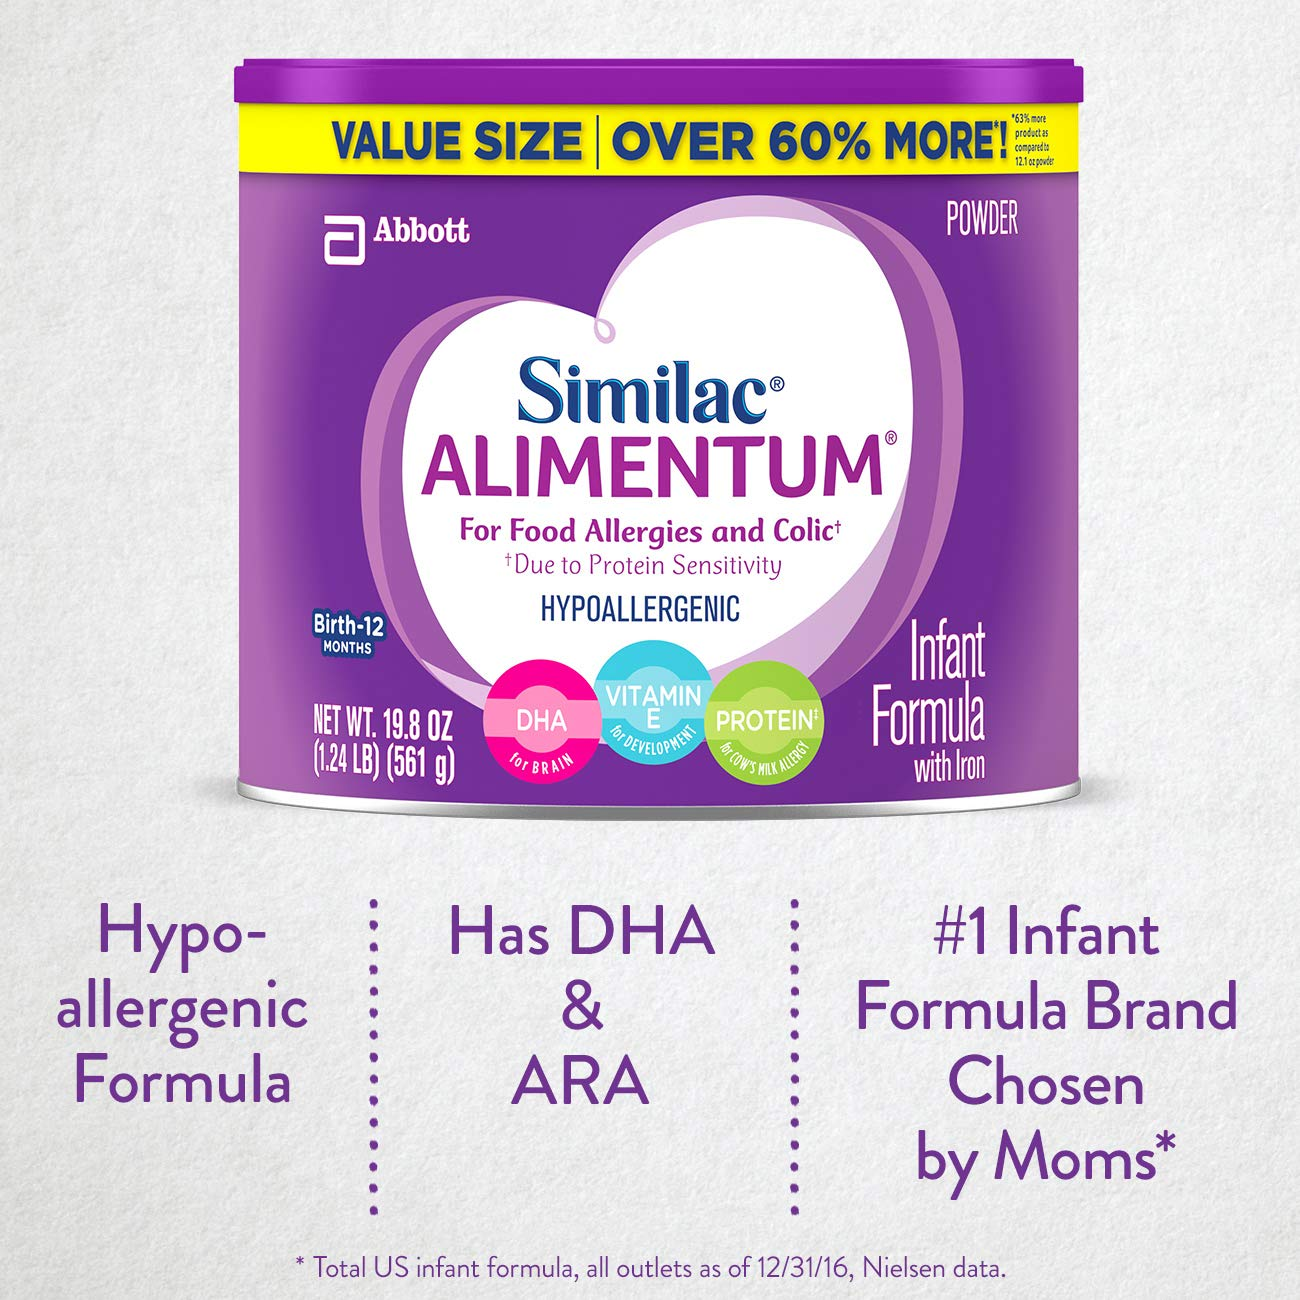 Similac Alimentum Hypoallergenic Infant Formula for Food Allergies and Colic, Baby Formula, Value Size Powder, 19.8 ounces, 4 Count by Similac (Image #8)